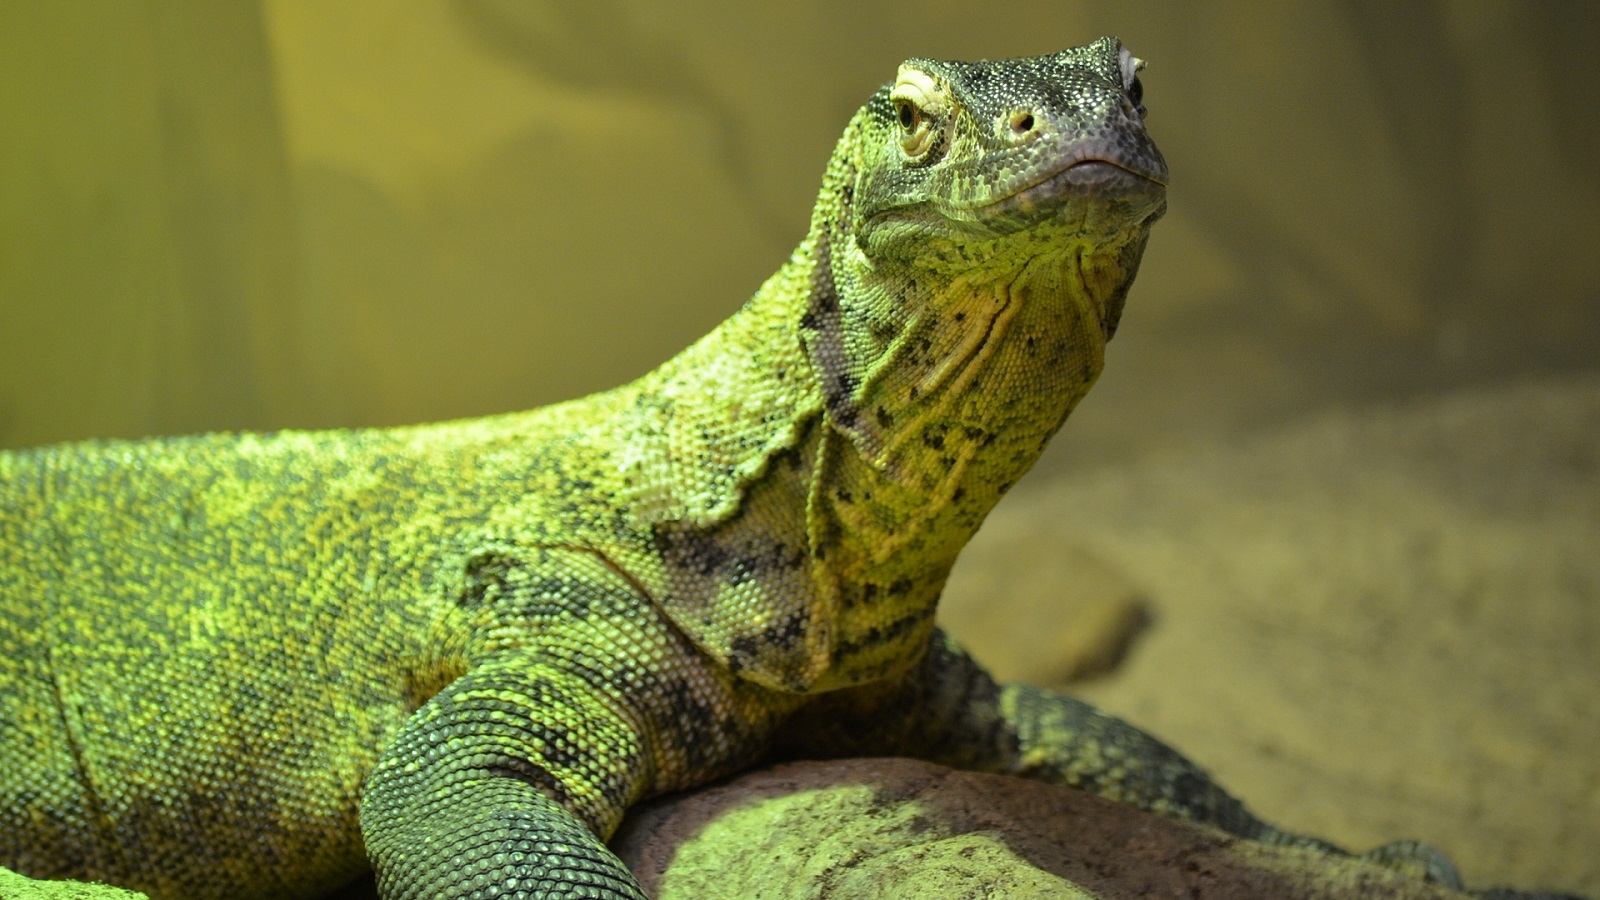 10 Fantastic Hd Komodo Dragon Wallpapers Hdwallsource Com